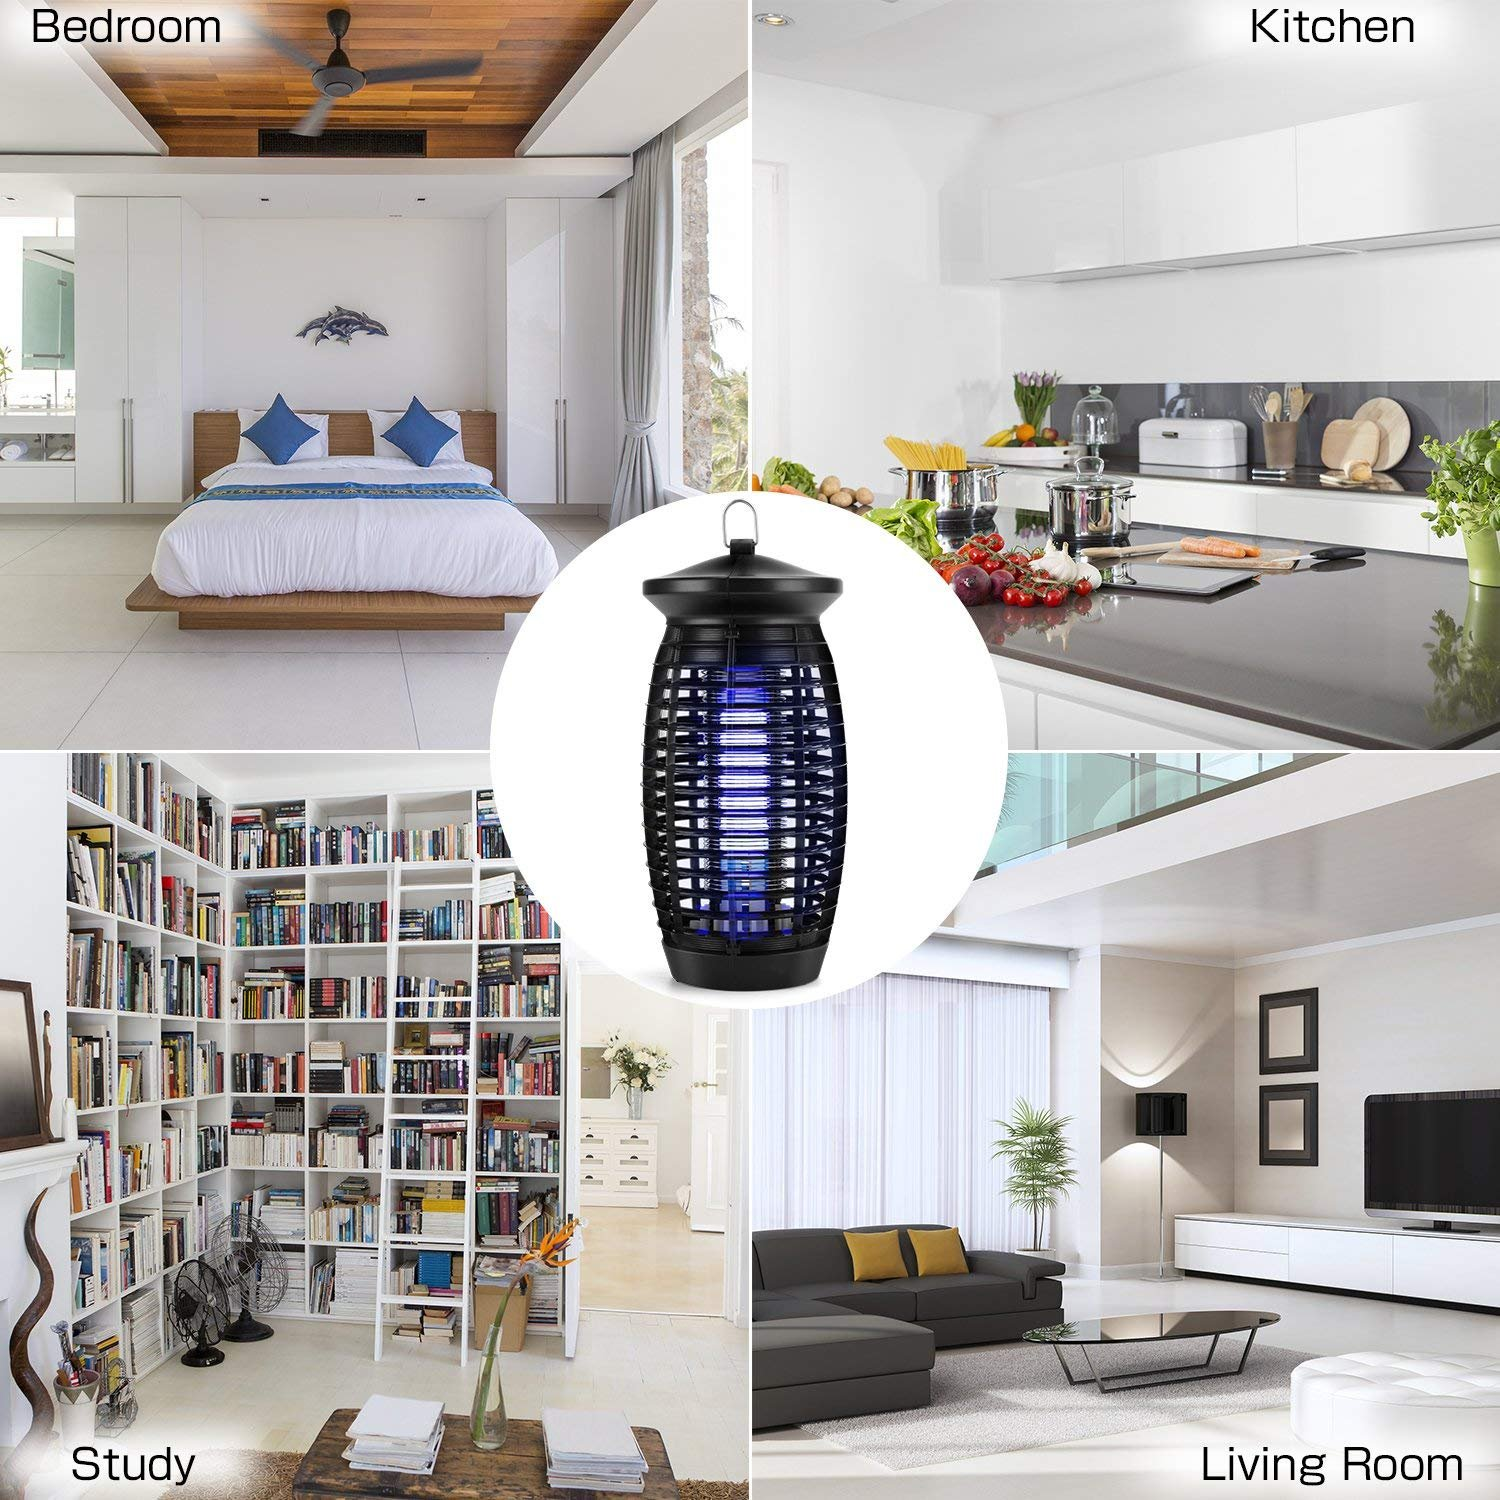 Xvolt Bug Electric Fly Trap Indoor Mosquito Zapper,500sq.ft.Coverage